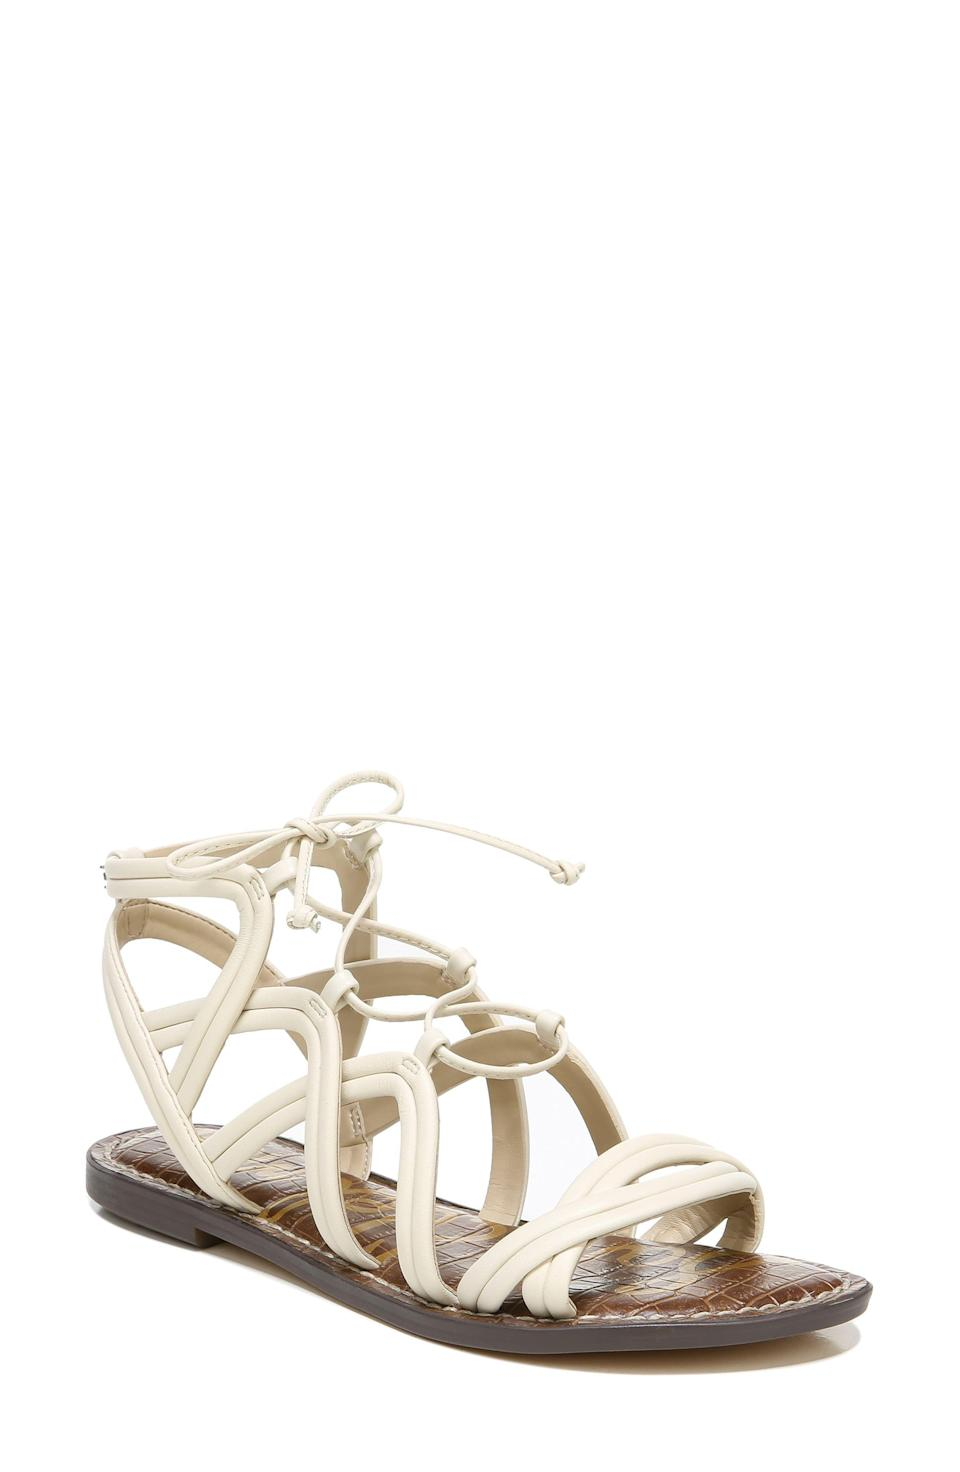 """<p><strong>Sam Edelman </strong></p><p>nordstrom.com</p><p><strong>$99.95</strong></p><p><a href=""""https://go.redirectingat.com?id=74968X1596630&url=https%3A%2F%2Fwww.nordstrom.com%2Fs%2Fsam-edelman-gasha-gladiator-sandal-women%2F5877968&sref=https%3A%2F%2Fwww.townandcountrymag.com%2Fstyle%2Ffashion-trends%2Fg36200206%2Fsummer-shoes%2F"""" rel=""""nofollow noopener"""" target=""""_blank"""" data-ylk=""""slk:Shop Now"""" class=""""link rapid-noclick-resp"""">Shop Now</a></p><p>The ideal blend of delicate and edgy, a pair of gladiator sandals will go with everything you want to wear from Memorial Day on. </p>"""